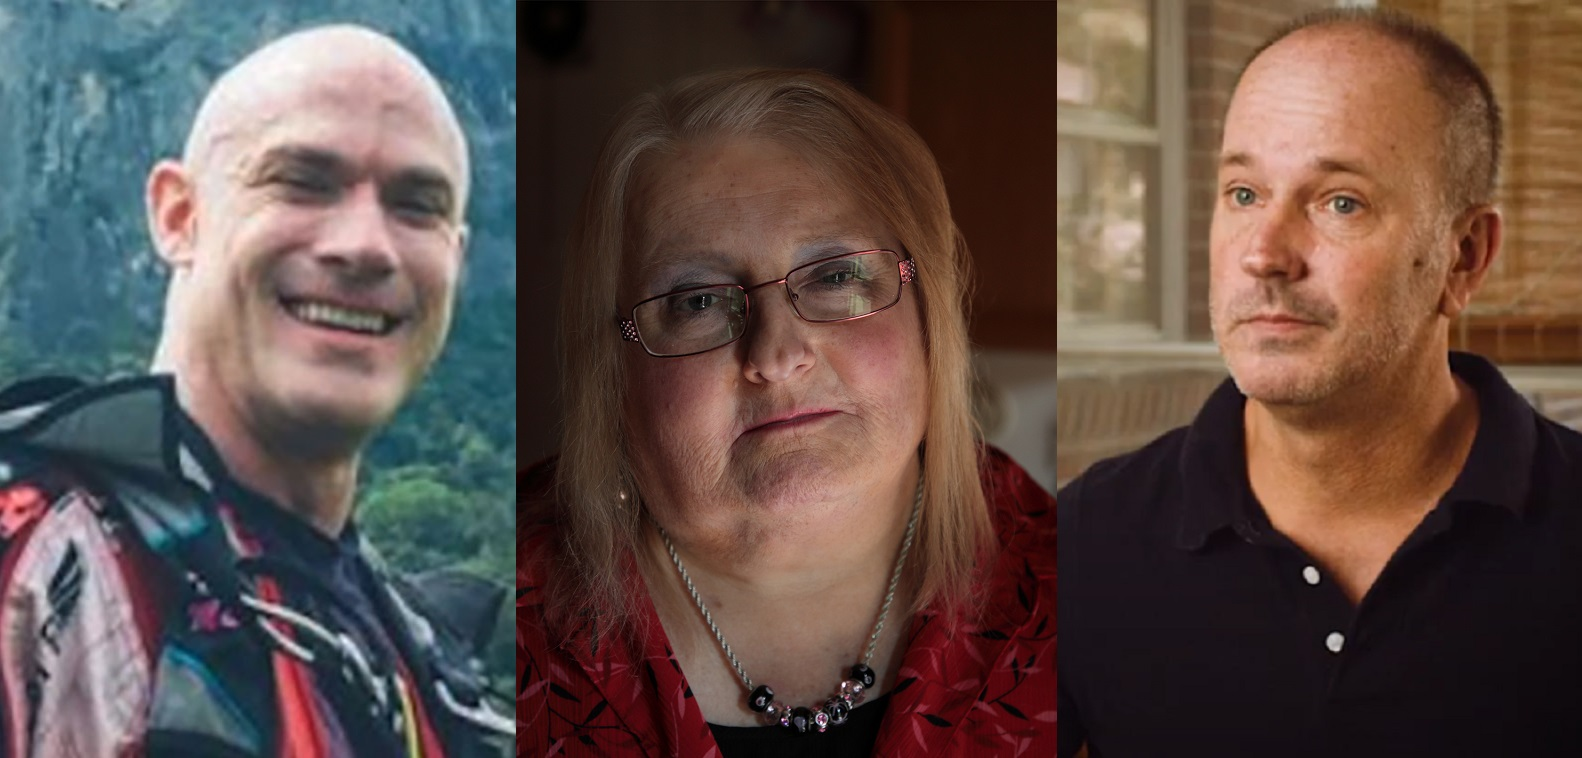 Donald Zarda, Aimee Stephens and Gerald Bostock (L-R) have helped secure LGBT+ rights for millions